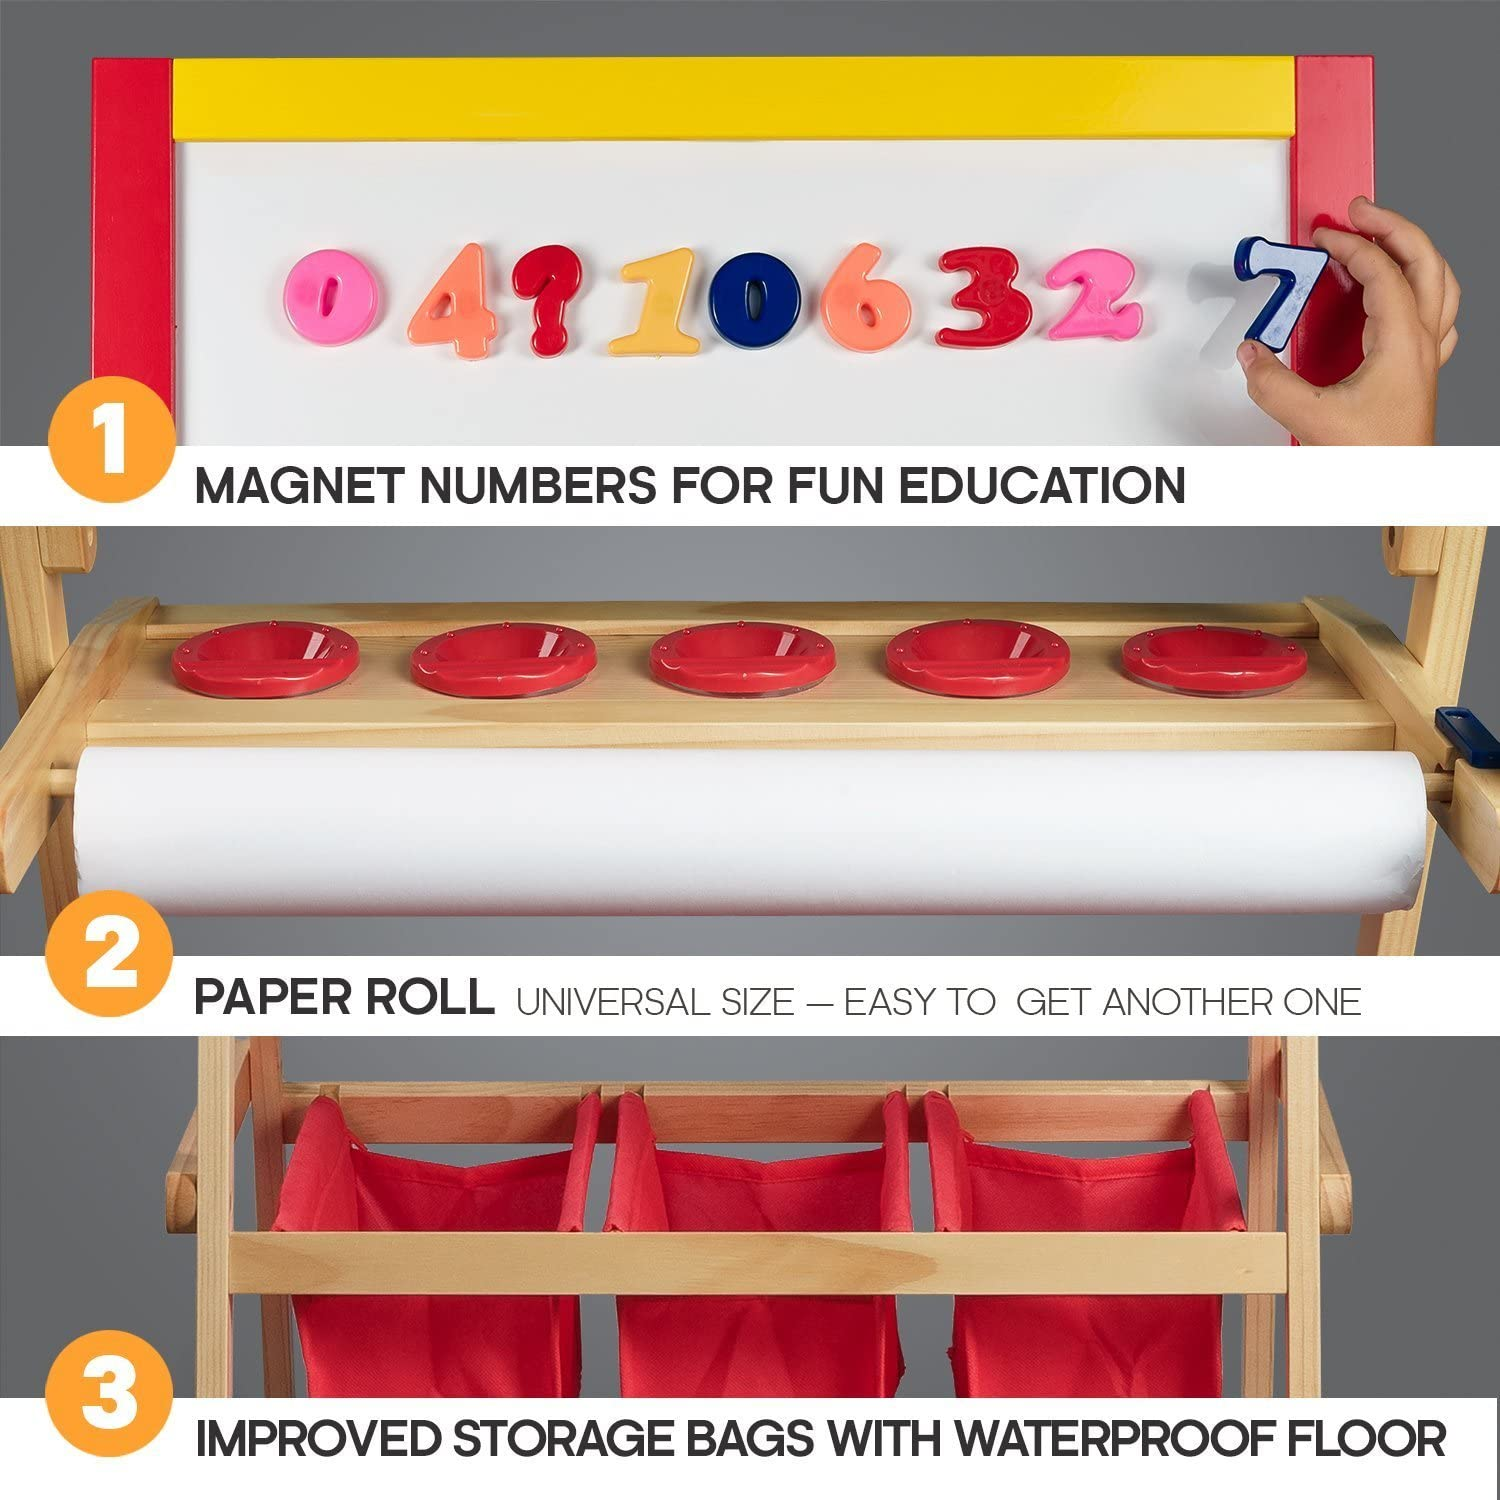 FREE Kids Art Supplies Double Sided Childrens Easel Chalkboard Magnetic Dry Erase Board Kids Easel with Paper Roll Toddler Easel with Storage Bins Wooden Art Easel for Kids Painting and Drawing